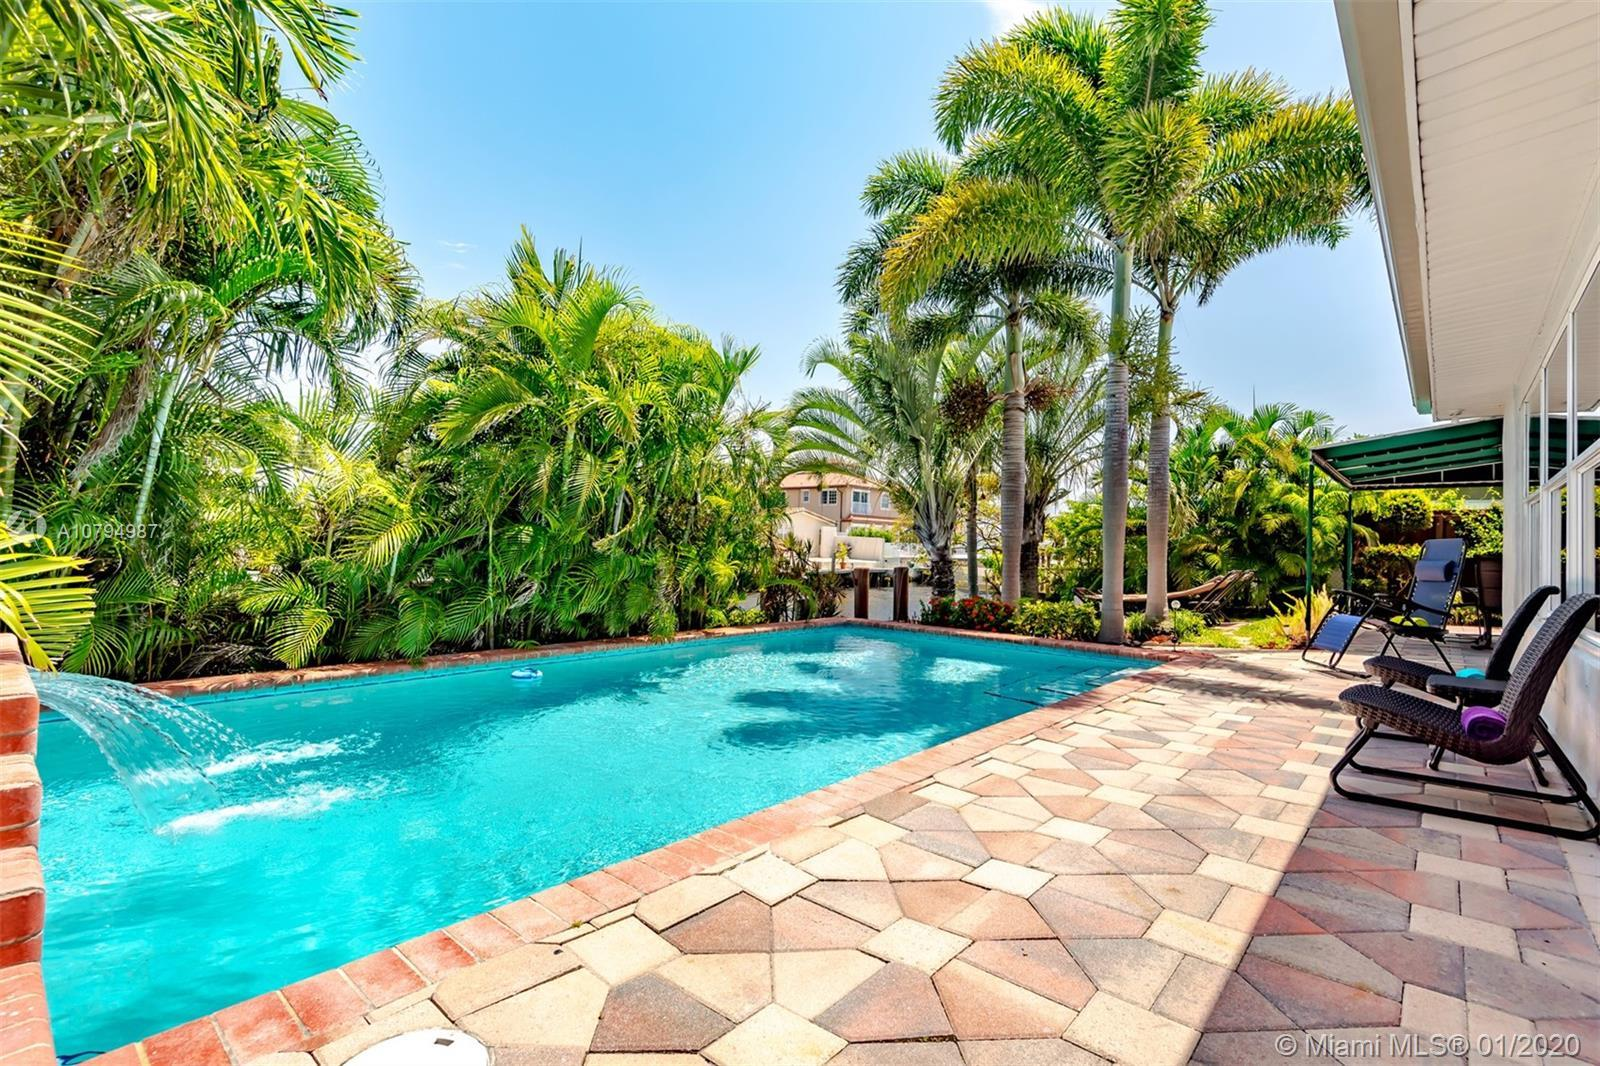 Perfect property for a second home or vacation rental for investors. Excellent short-term rental inc